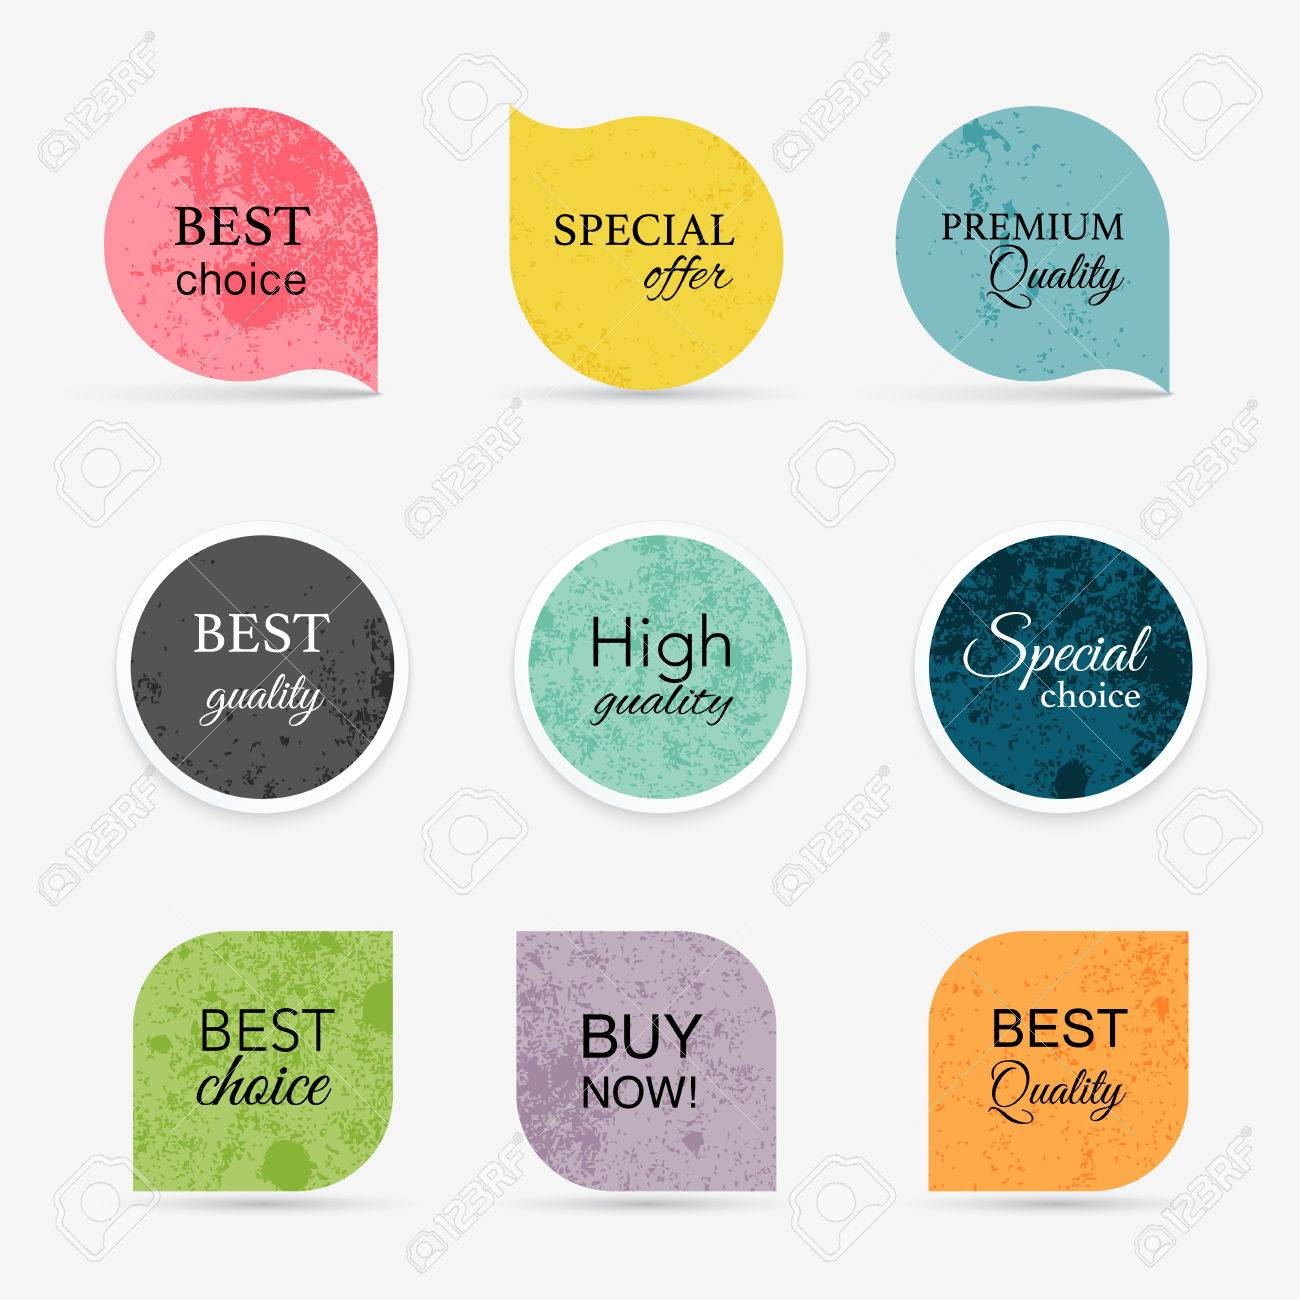 Collection of vintage promo seals/stickers. Isolated vector illustration - 41368879